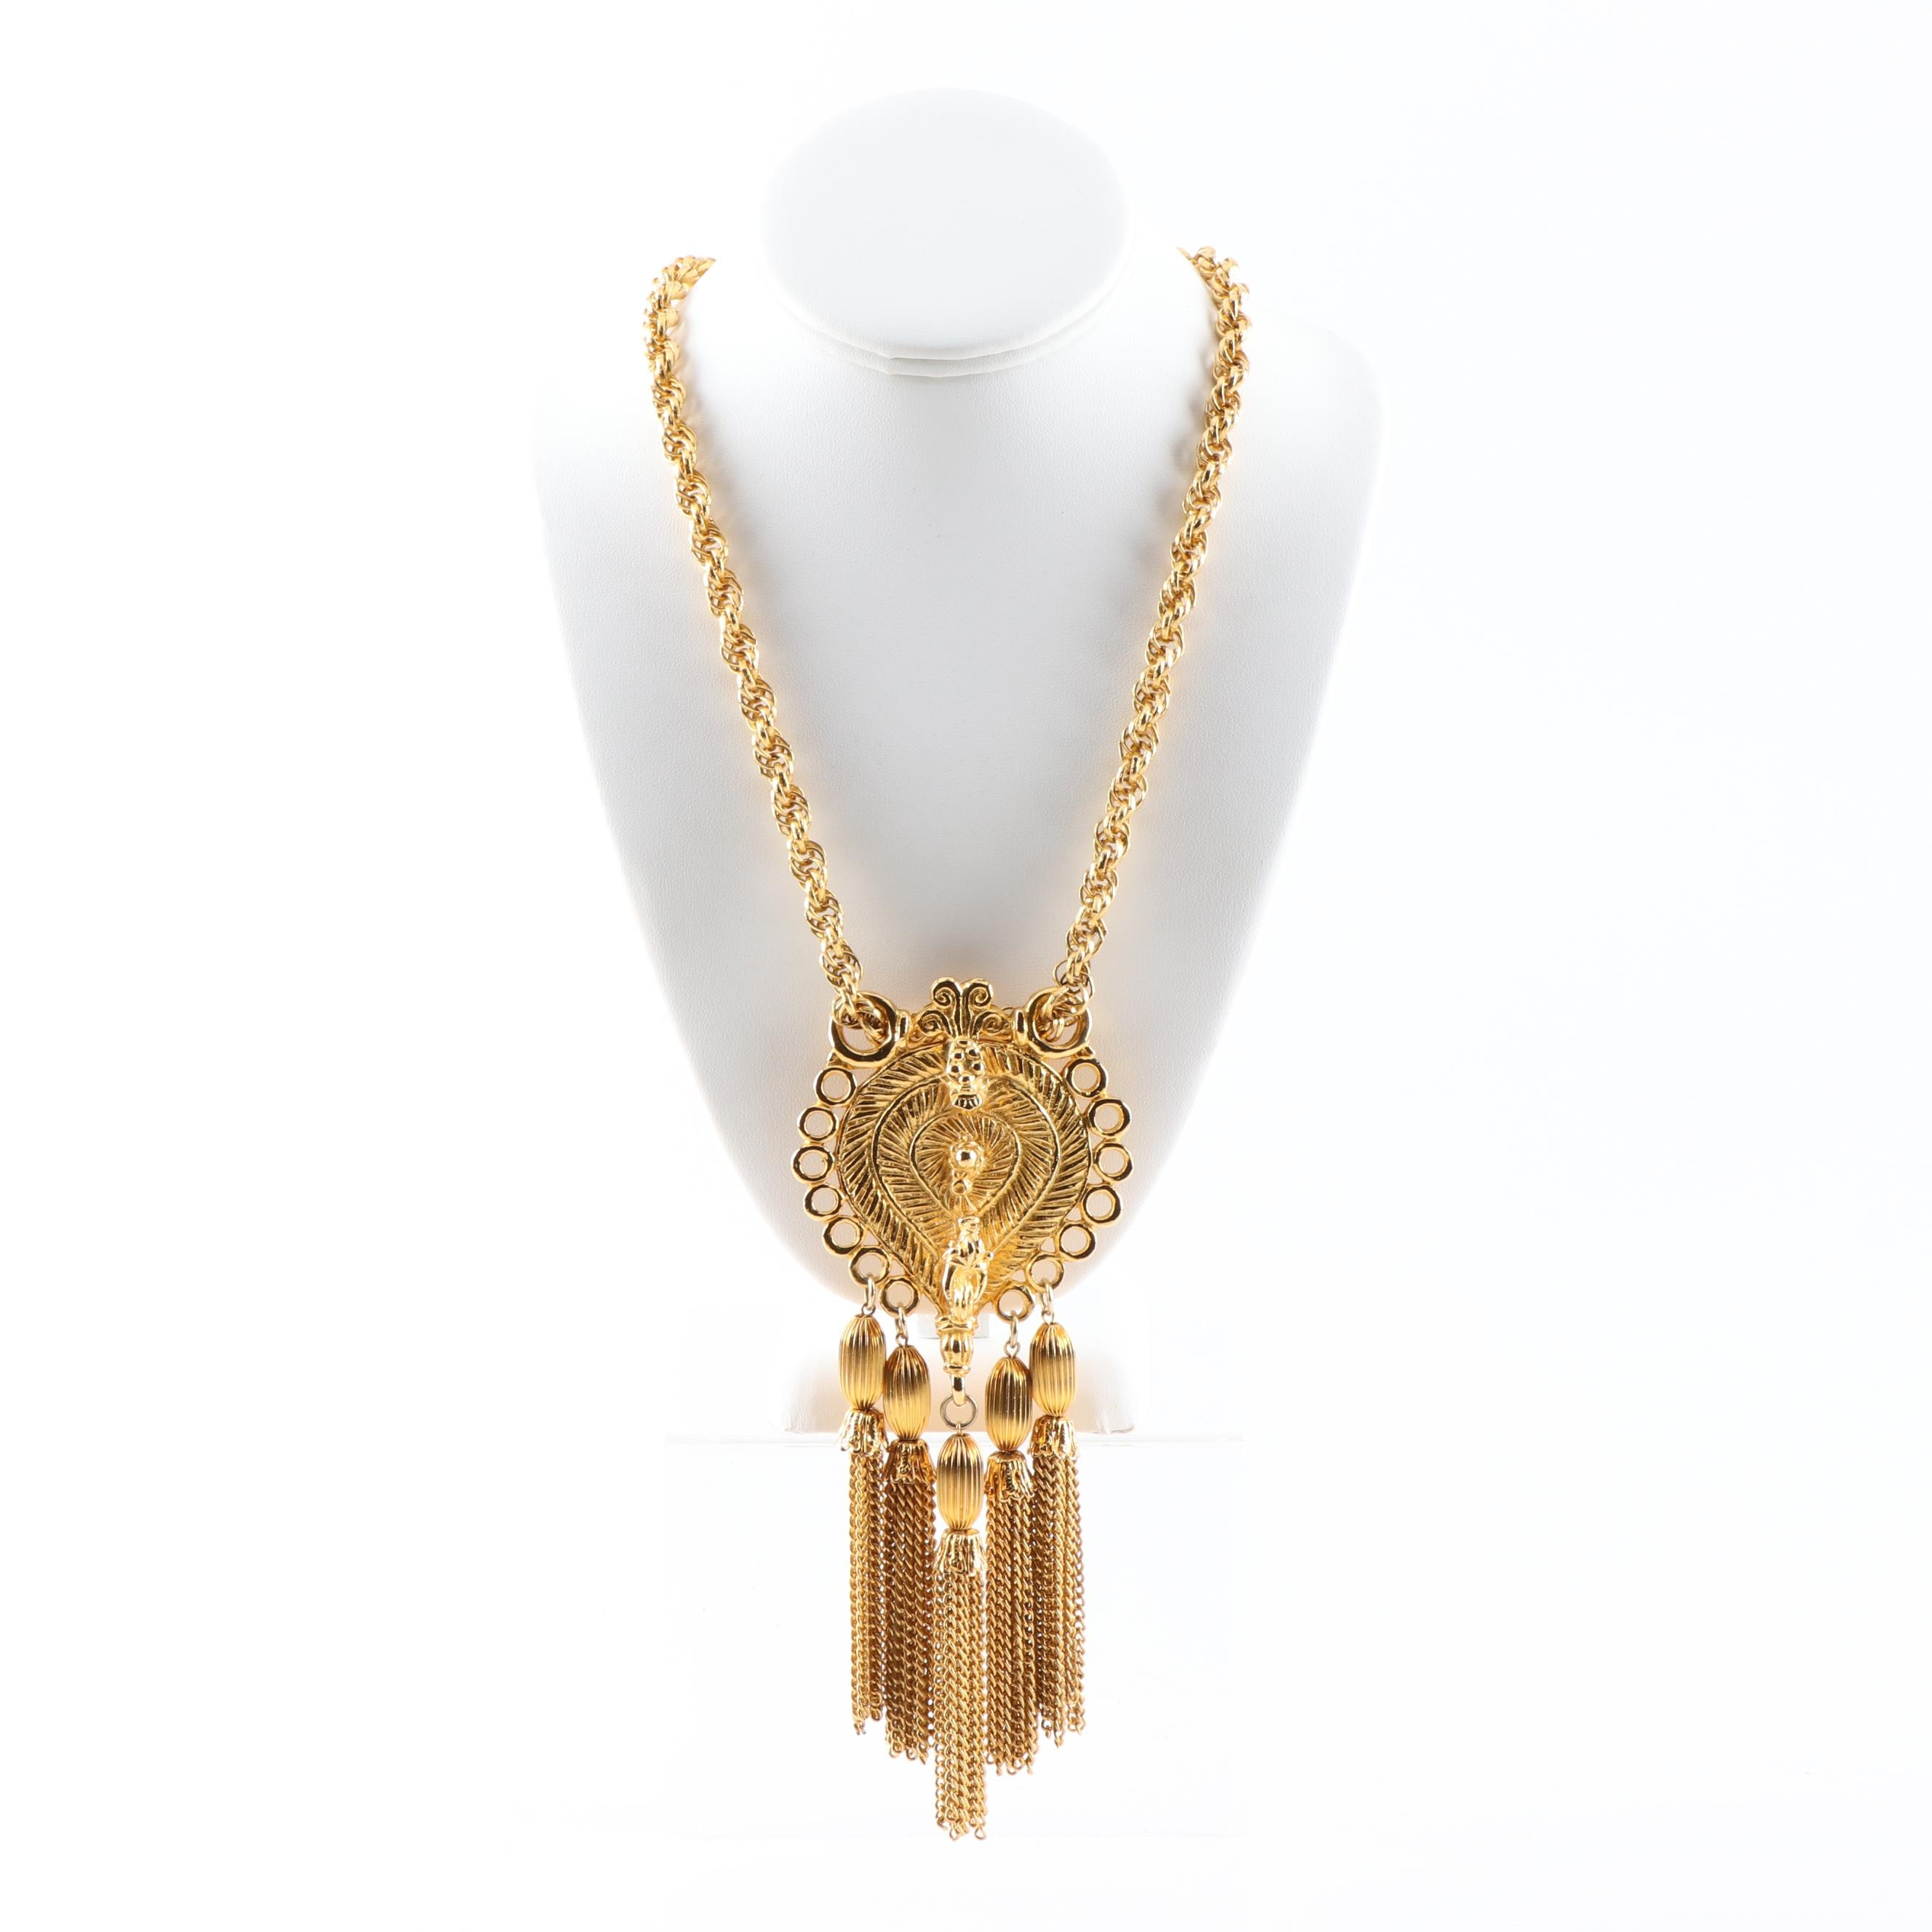 Judith Leiber Gold Tone Tassel Necklace